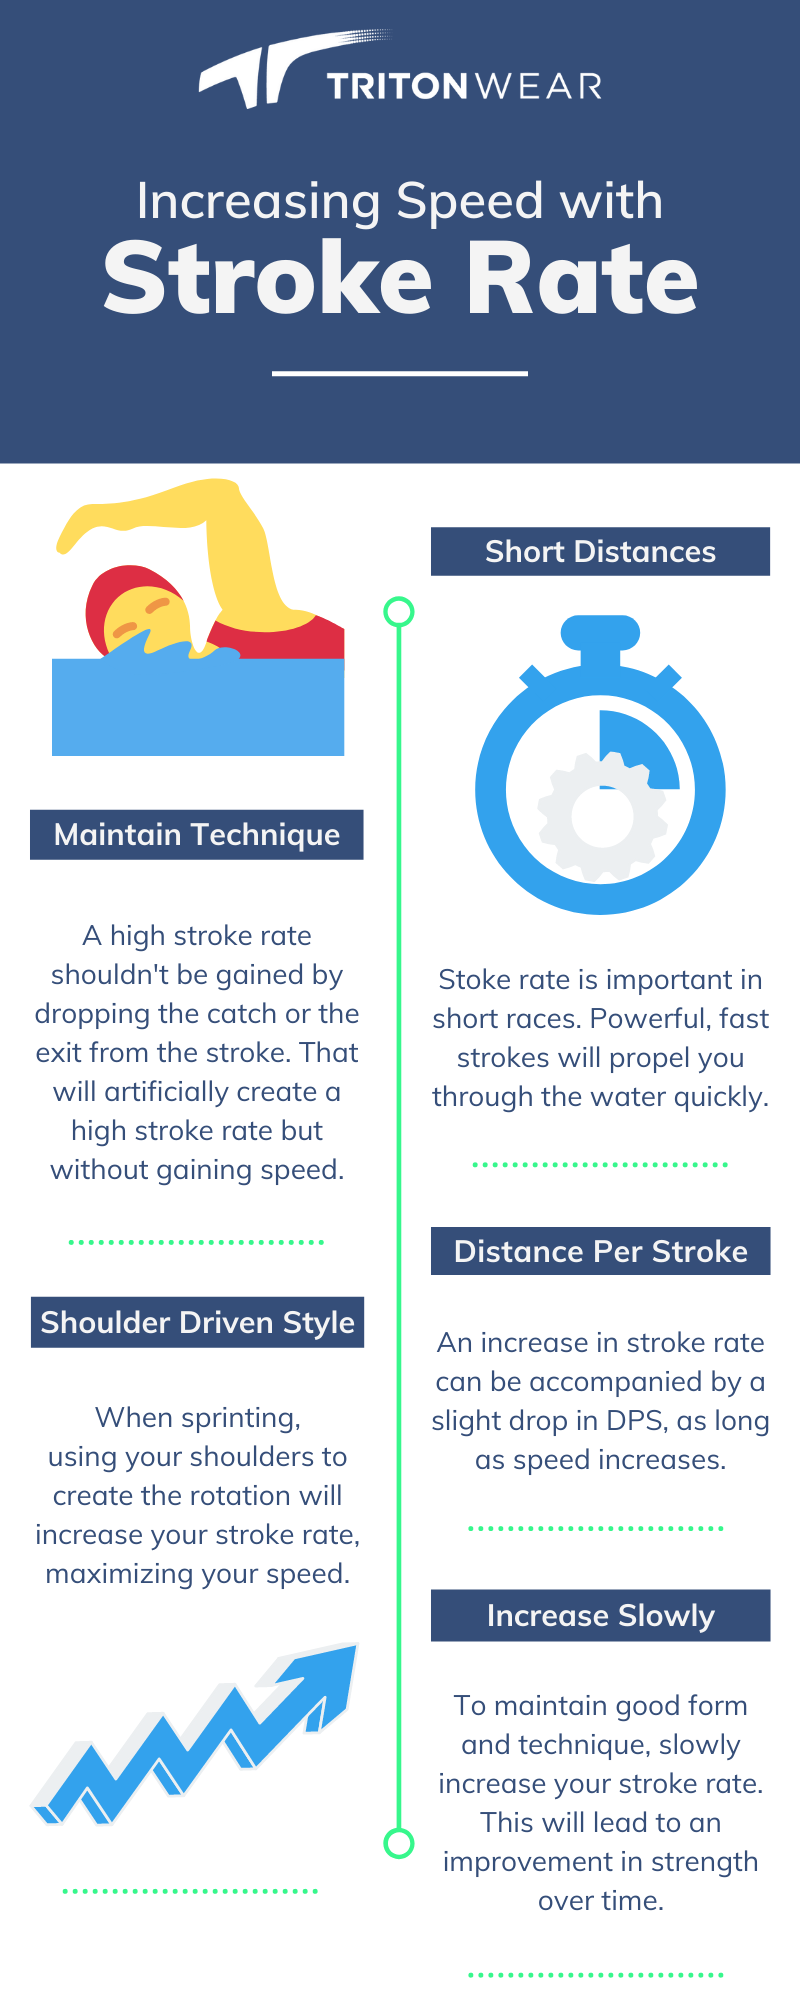 StrokeRateInfographic